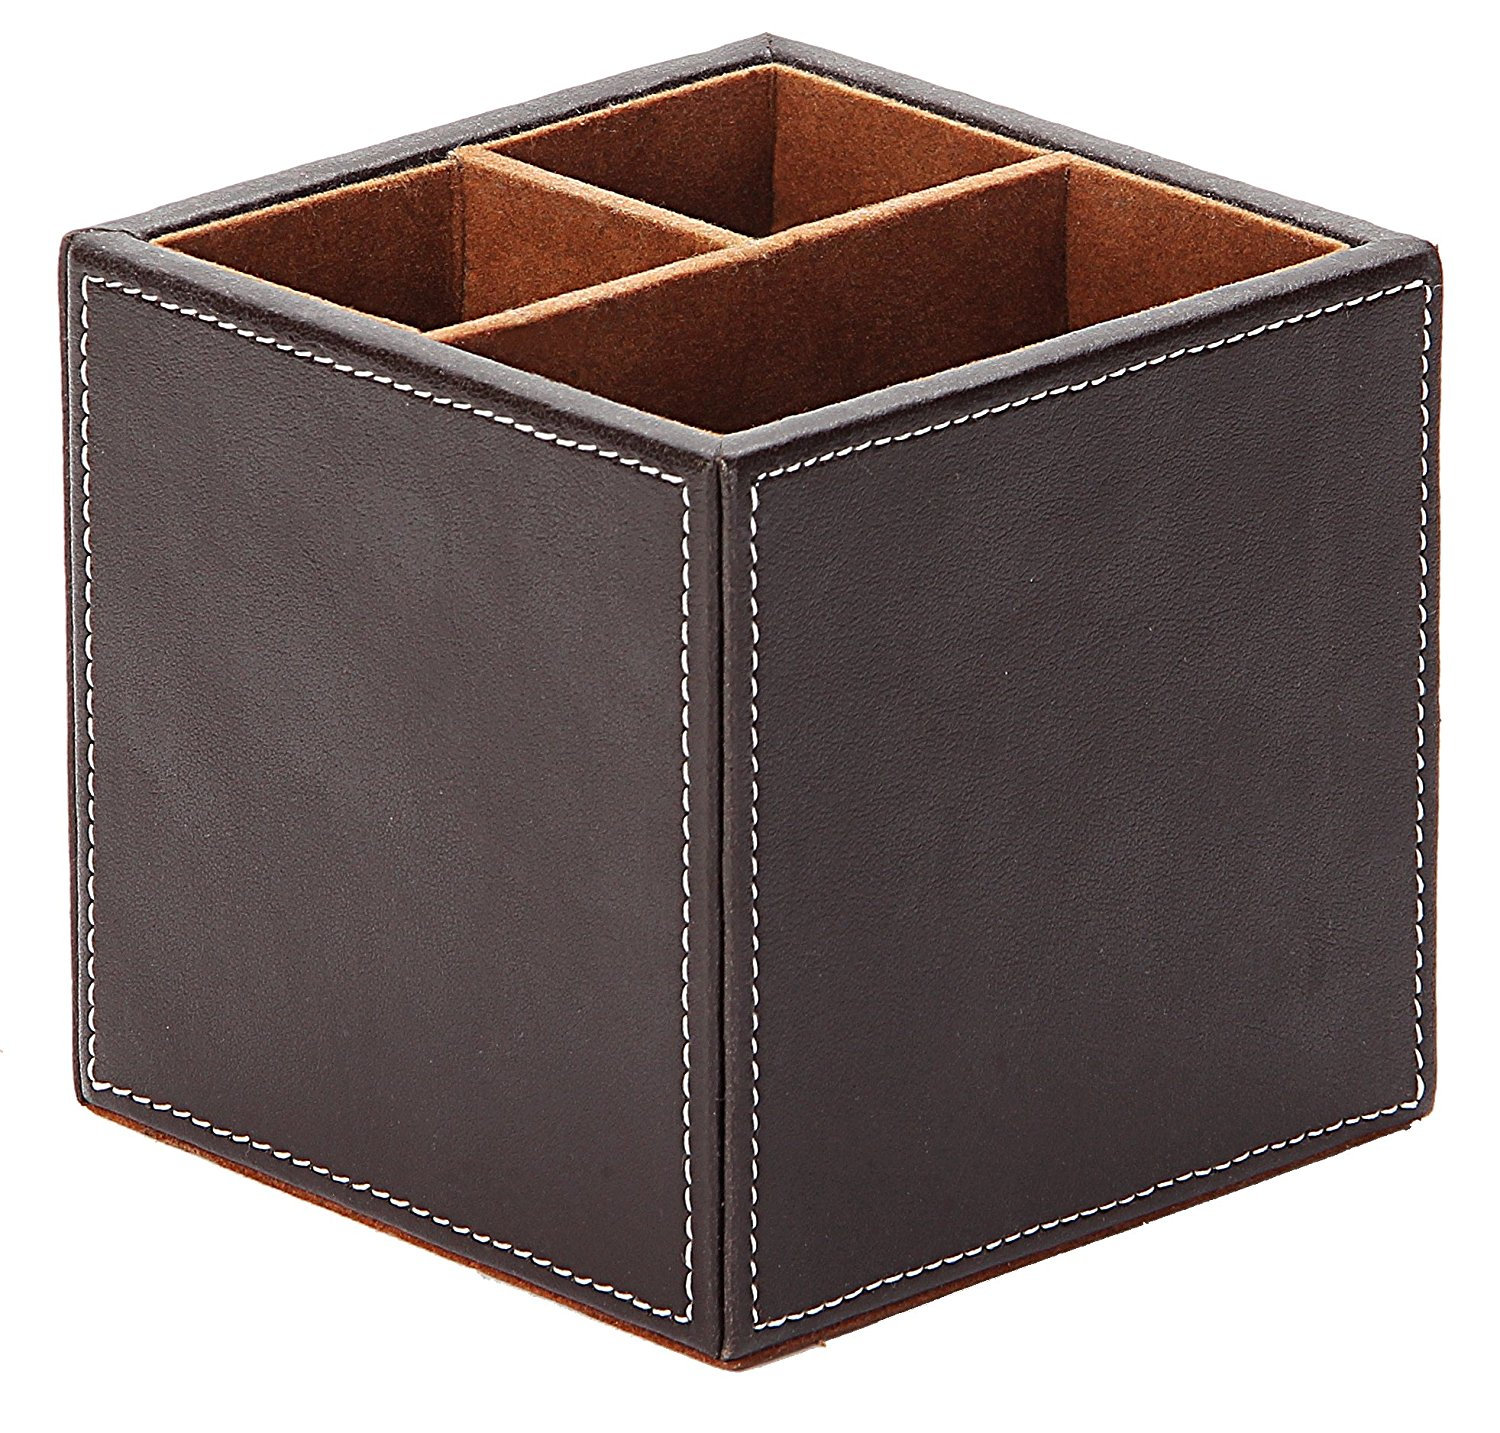 Osco Faux Leather Square Pen Pot Brown